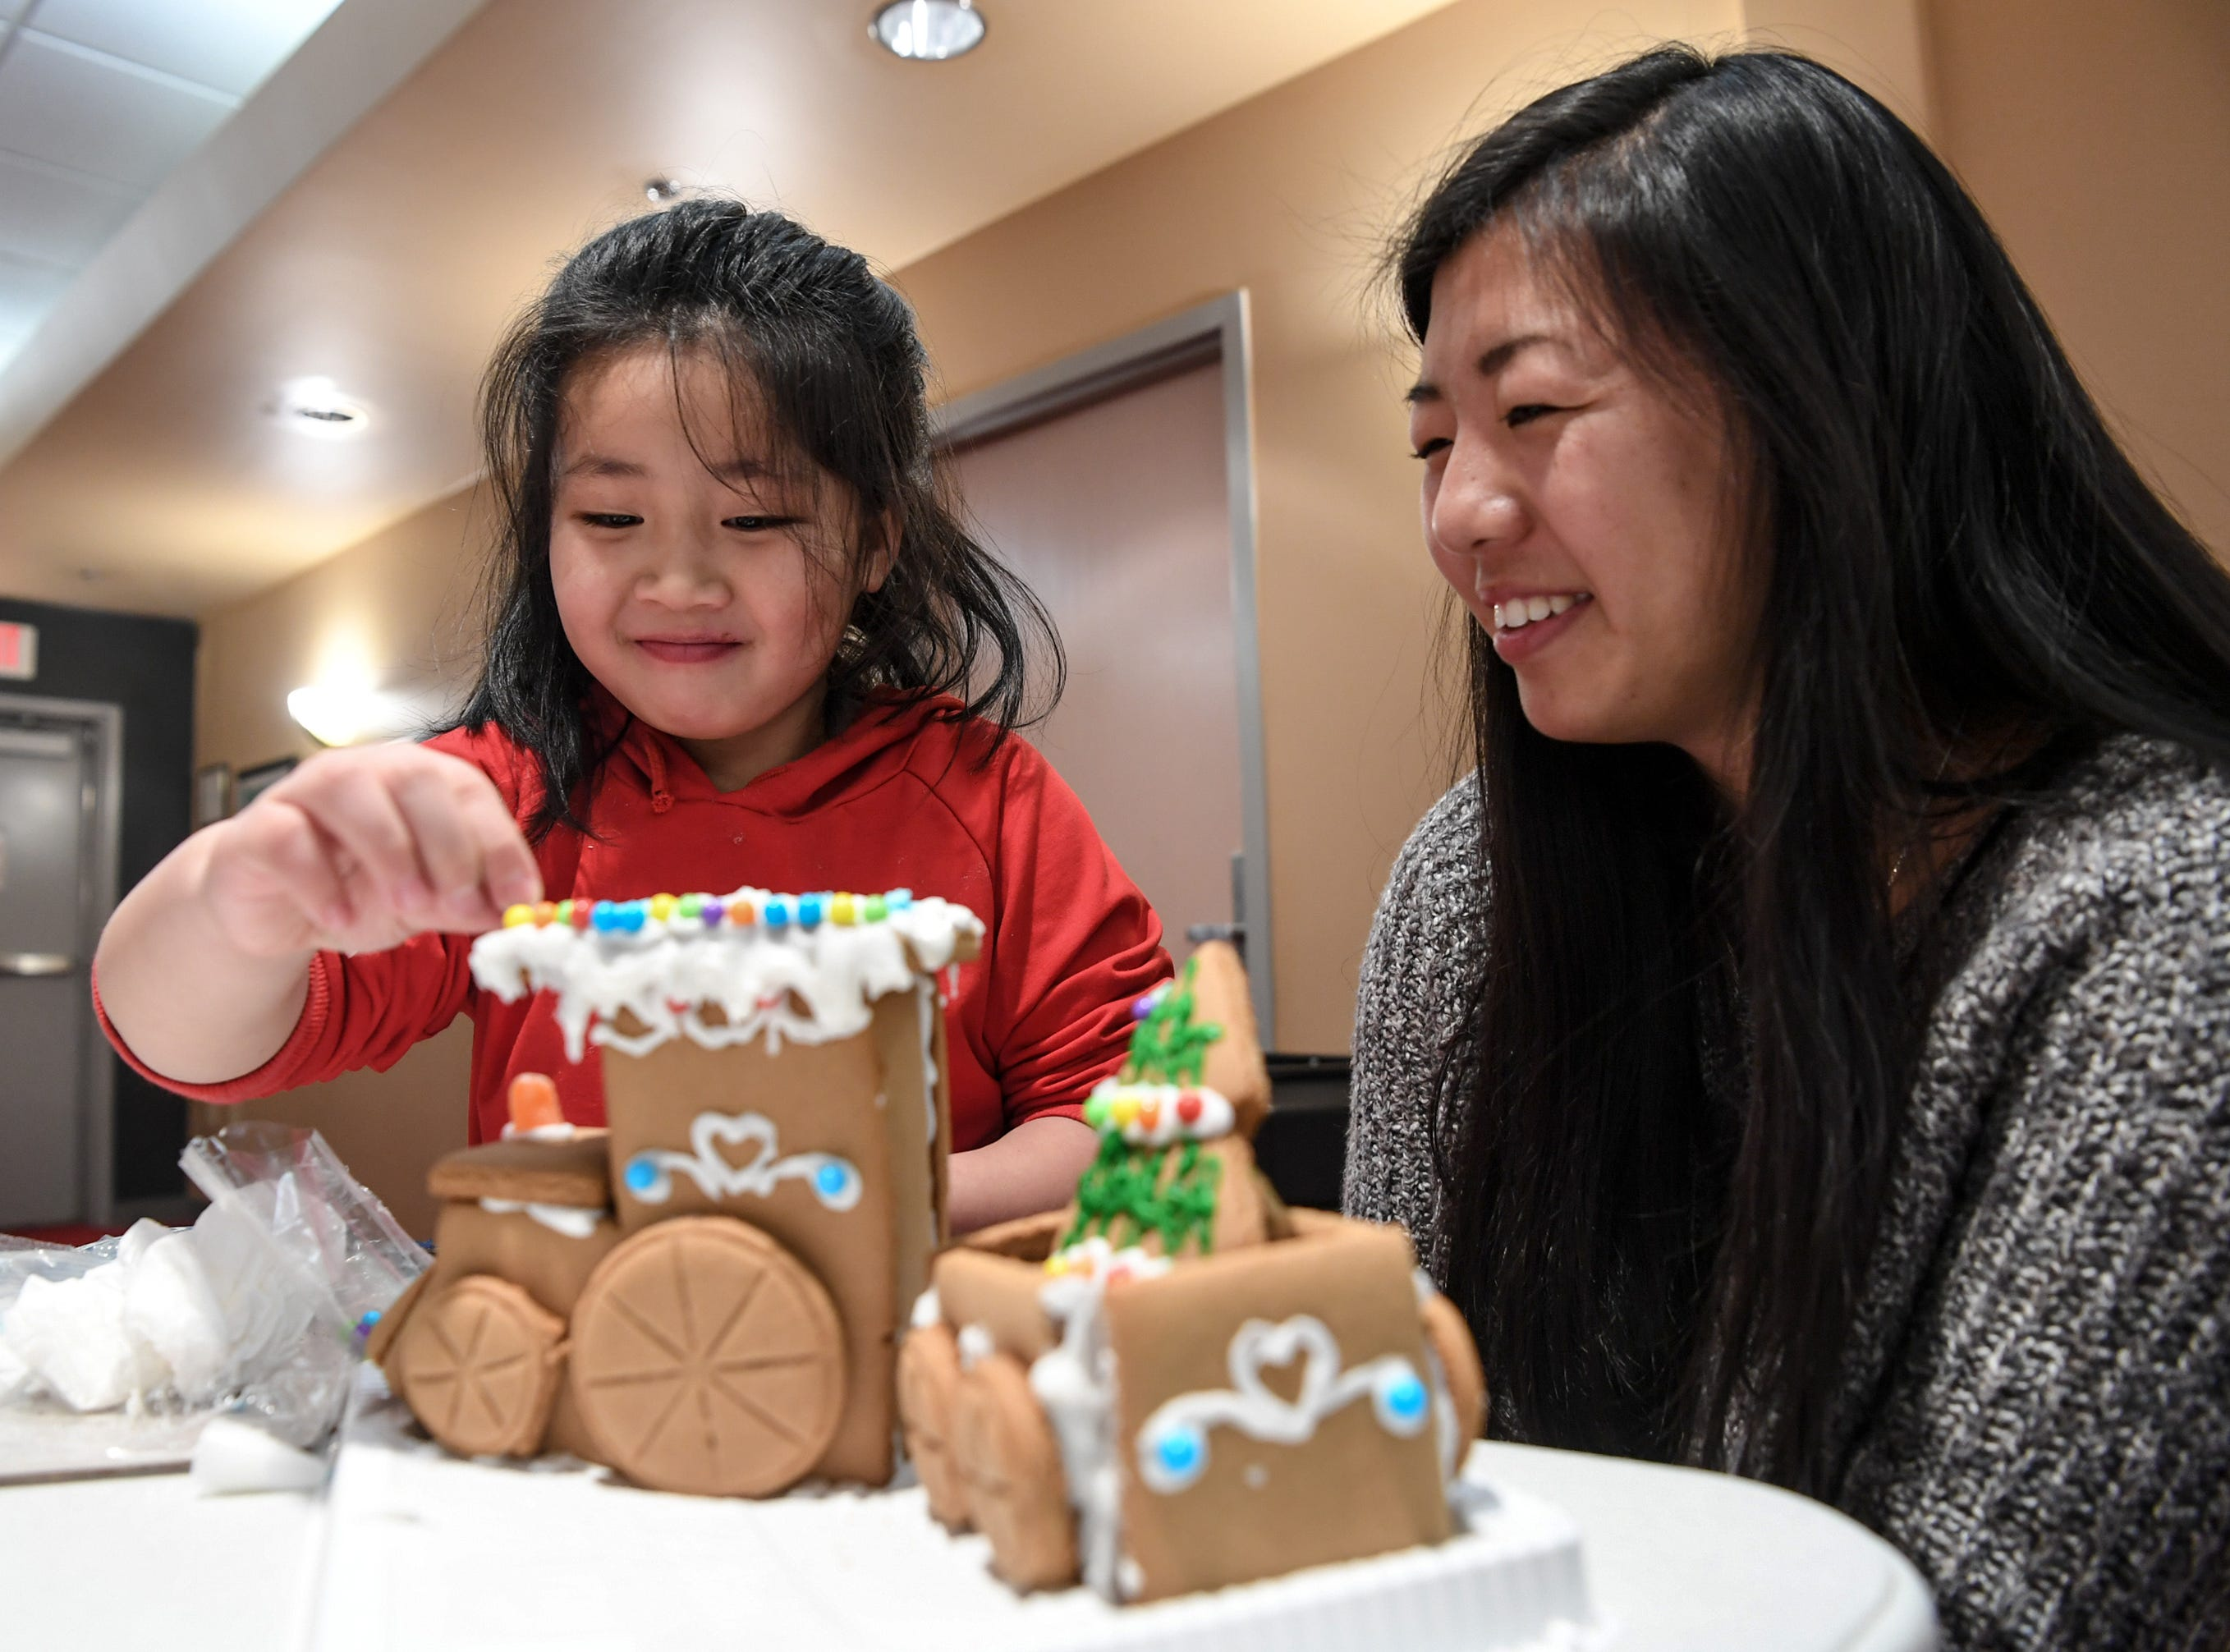 Nicole Lin, left, of Anderson smiles with Emily Claypool, right, while making their own train shaped gingerbread creation, during the Big Brothers Big Sisters of the Upstate gingerbread house decorating party at the Anderson County Museum in Anderson on Tuesday. Older mentors spend six hours or more a month with their little brother or sister, including the group activity with materials donated by local businesses. The group matches up mentors in Anderson, Oconee, and Pickens Counties.